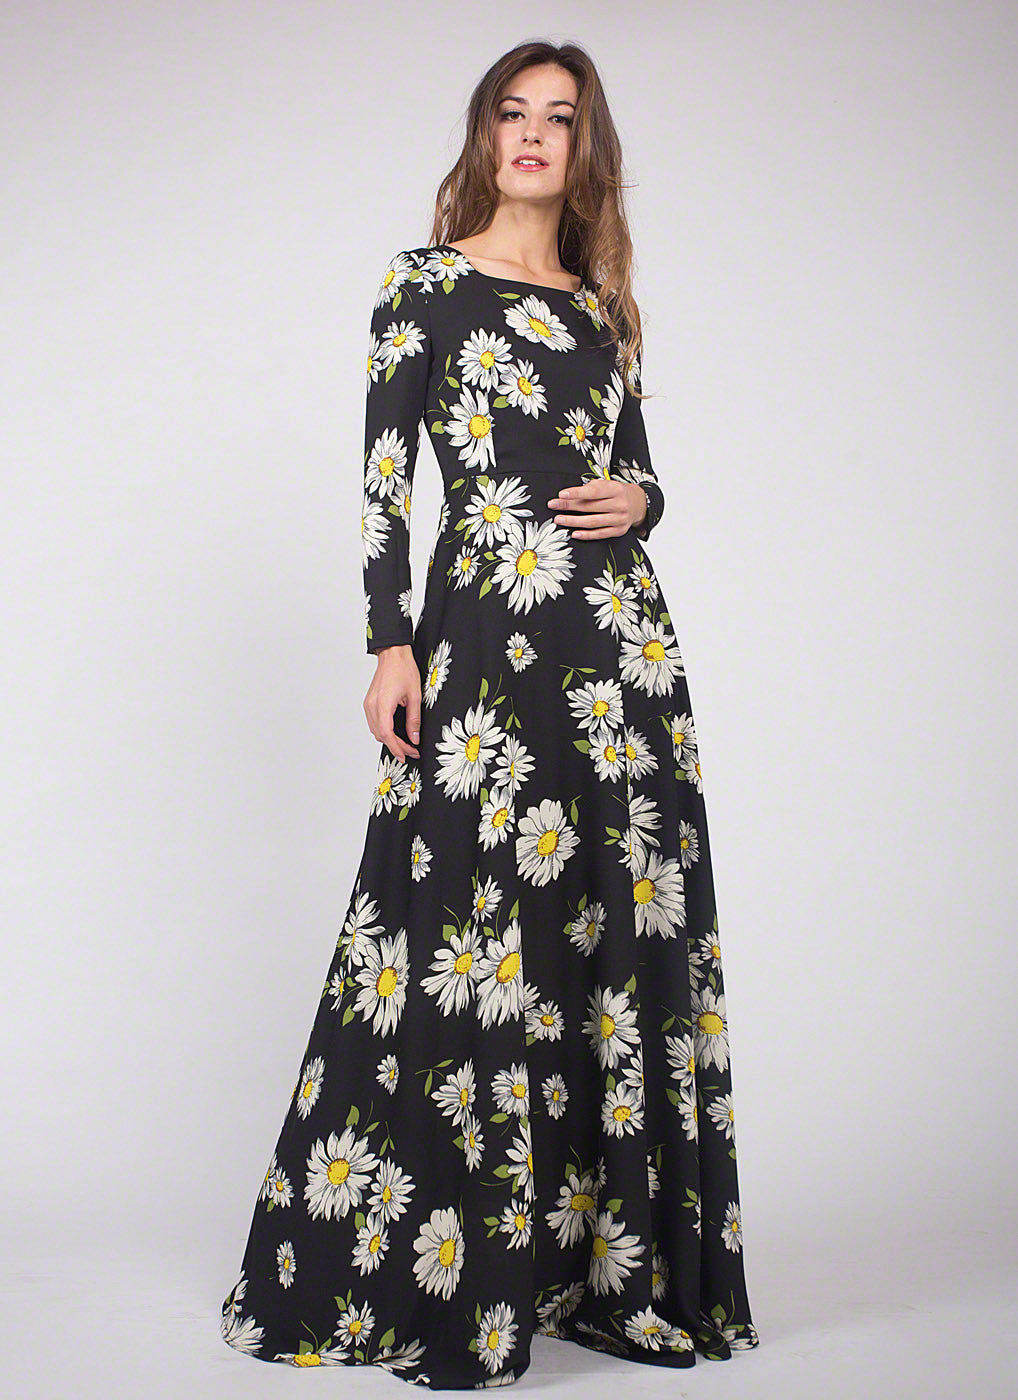 30155cfb9a Floor Length Black Daisy Print Maxi Dress/ Trendy Long Sleeve Black Bold  Floral Print Maxi